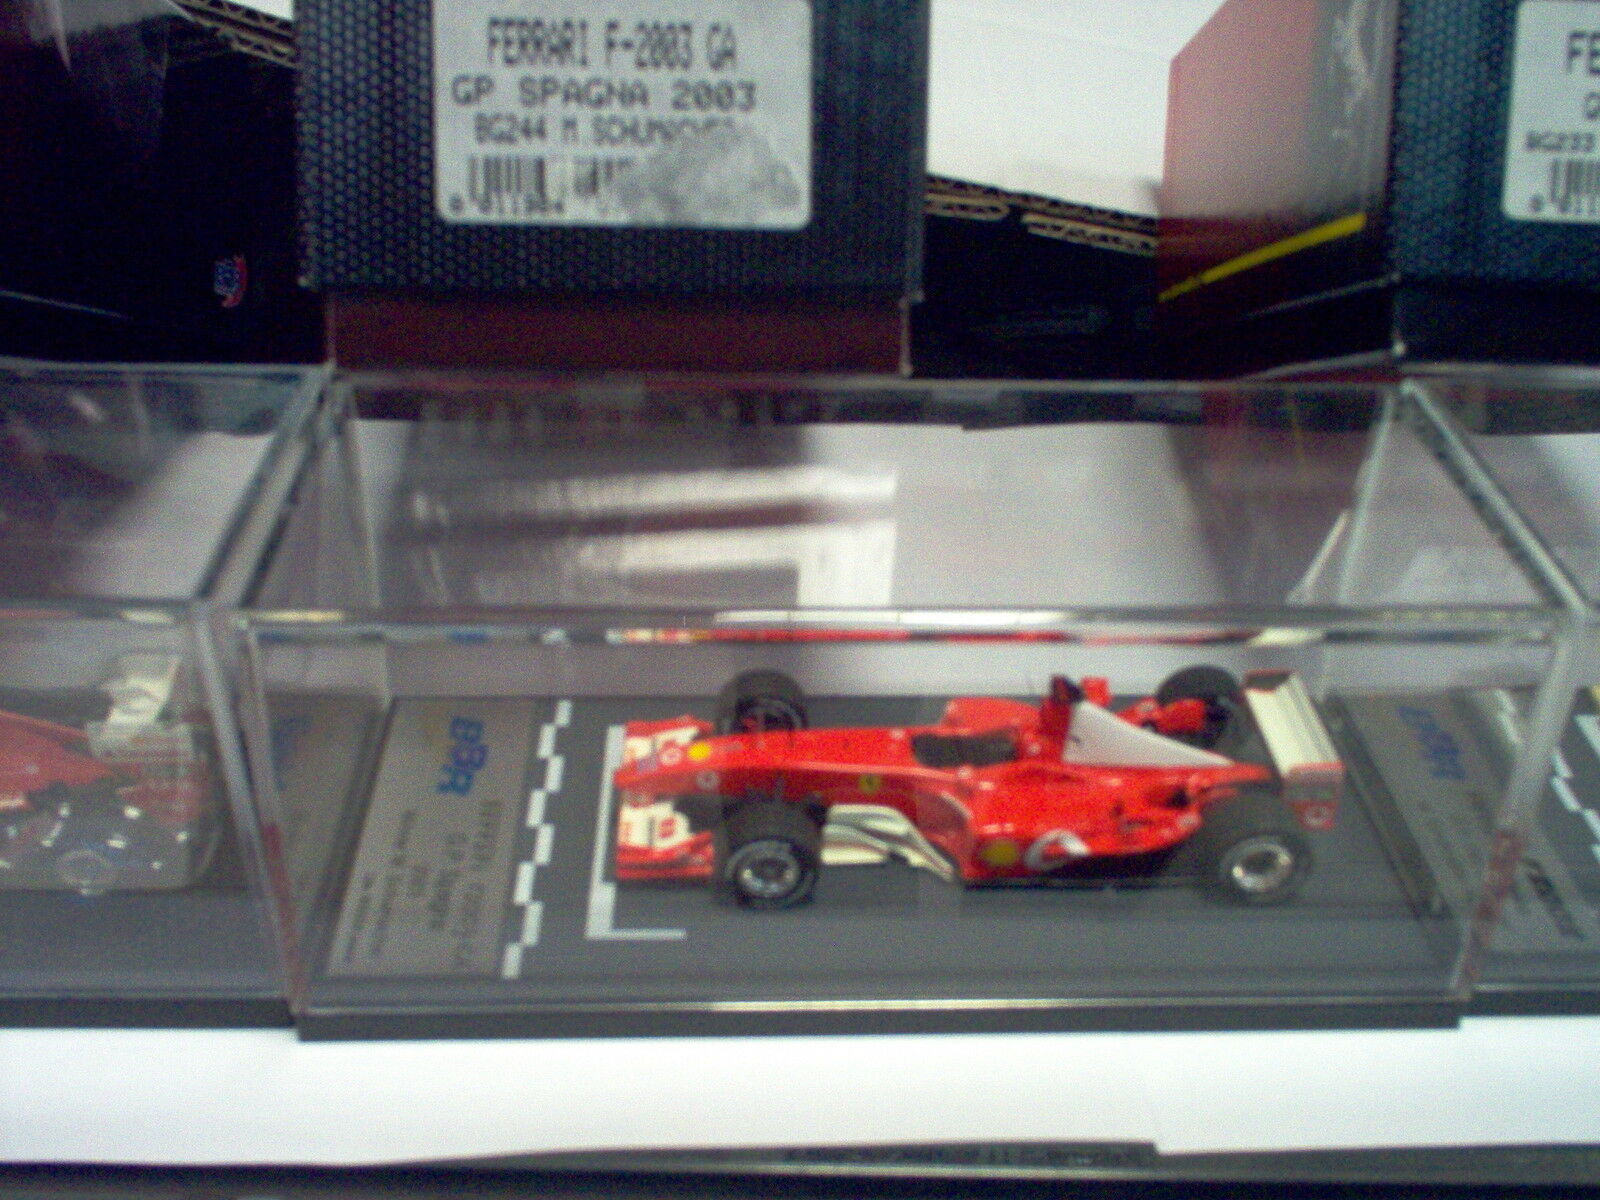 Ferrari F2003GA GP Spagna 2003  M.Schumacher  1/43 BG244 BBRMODELS Made in Italy